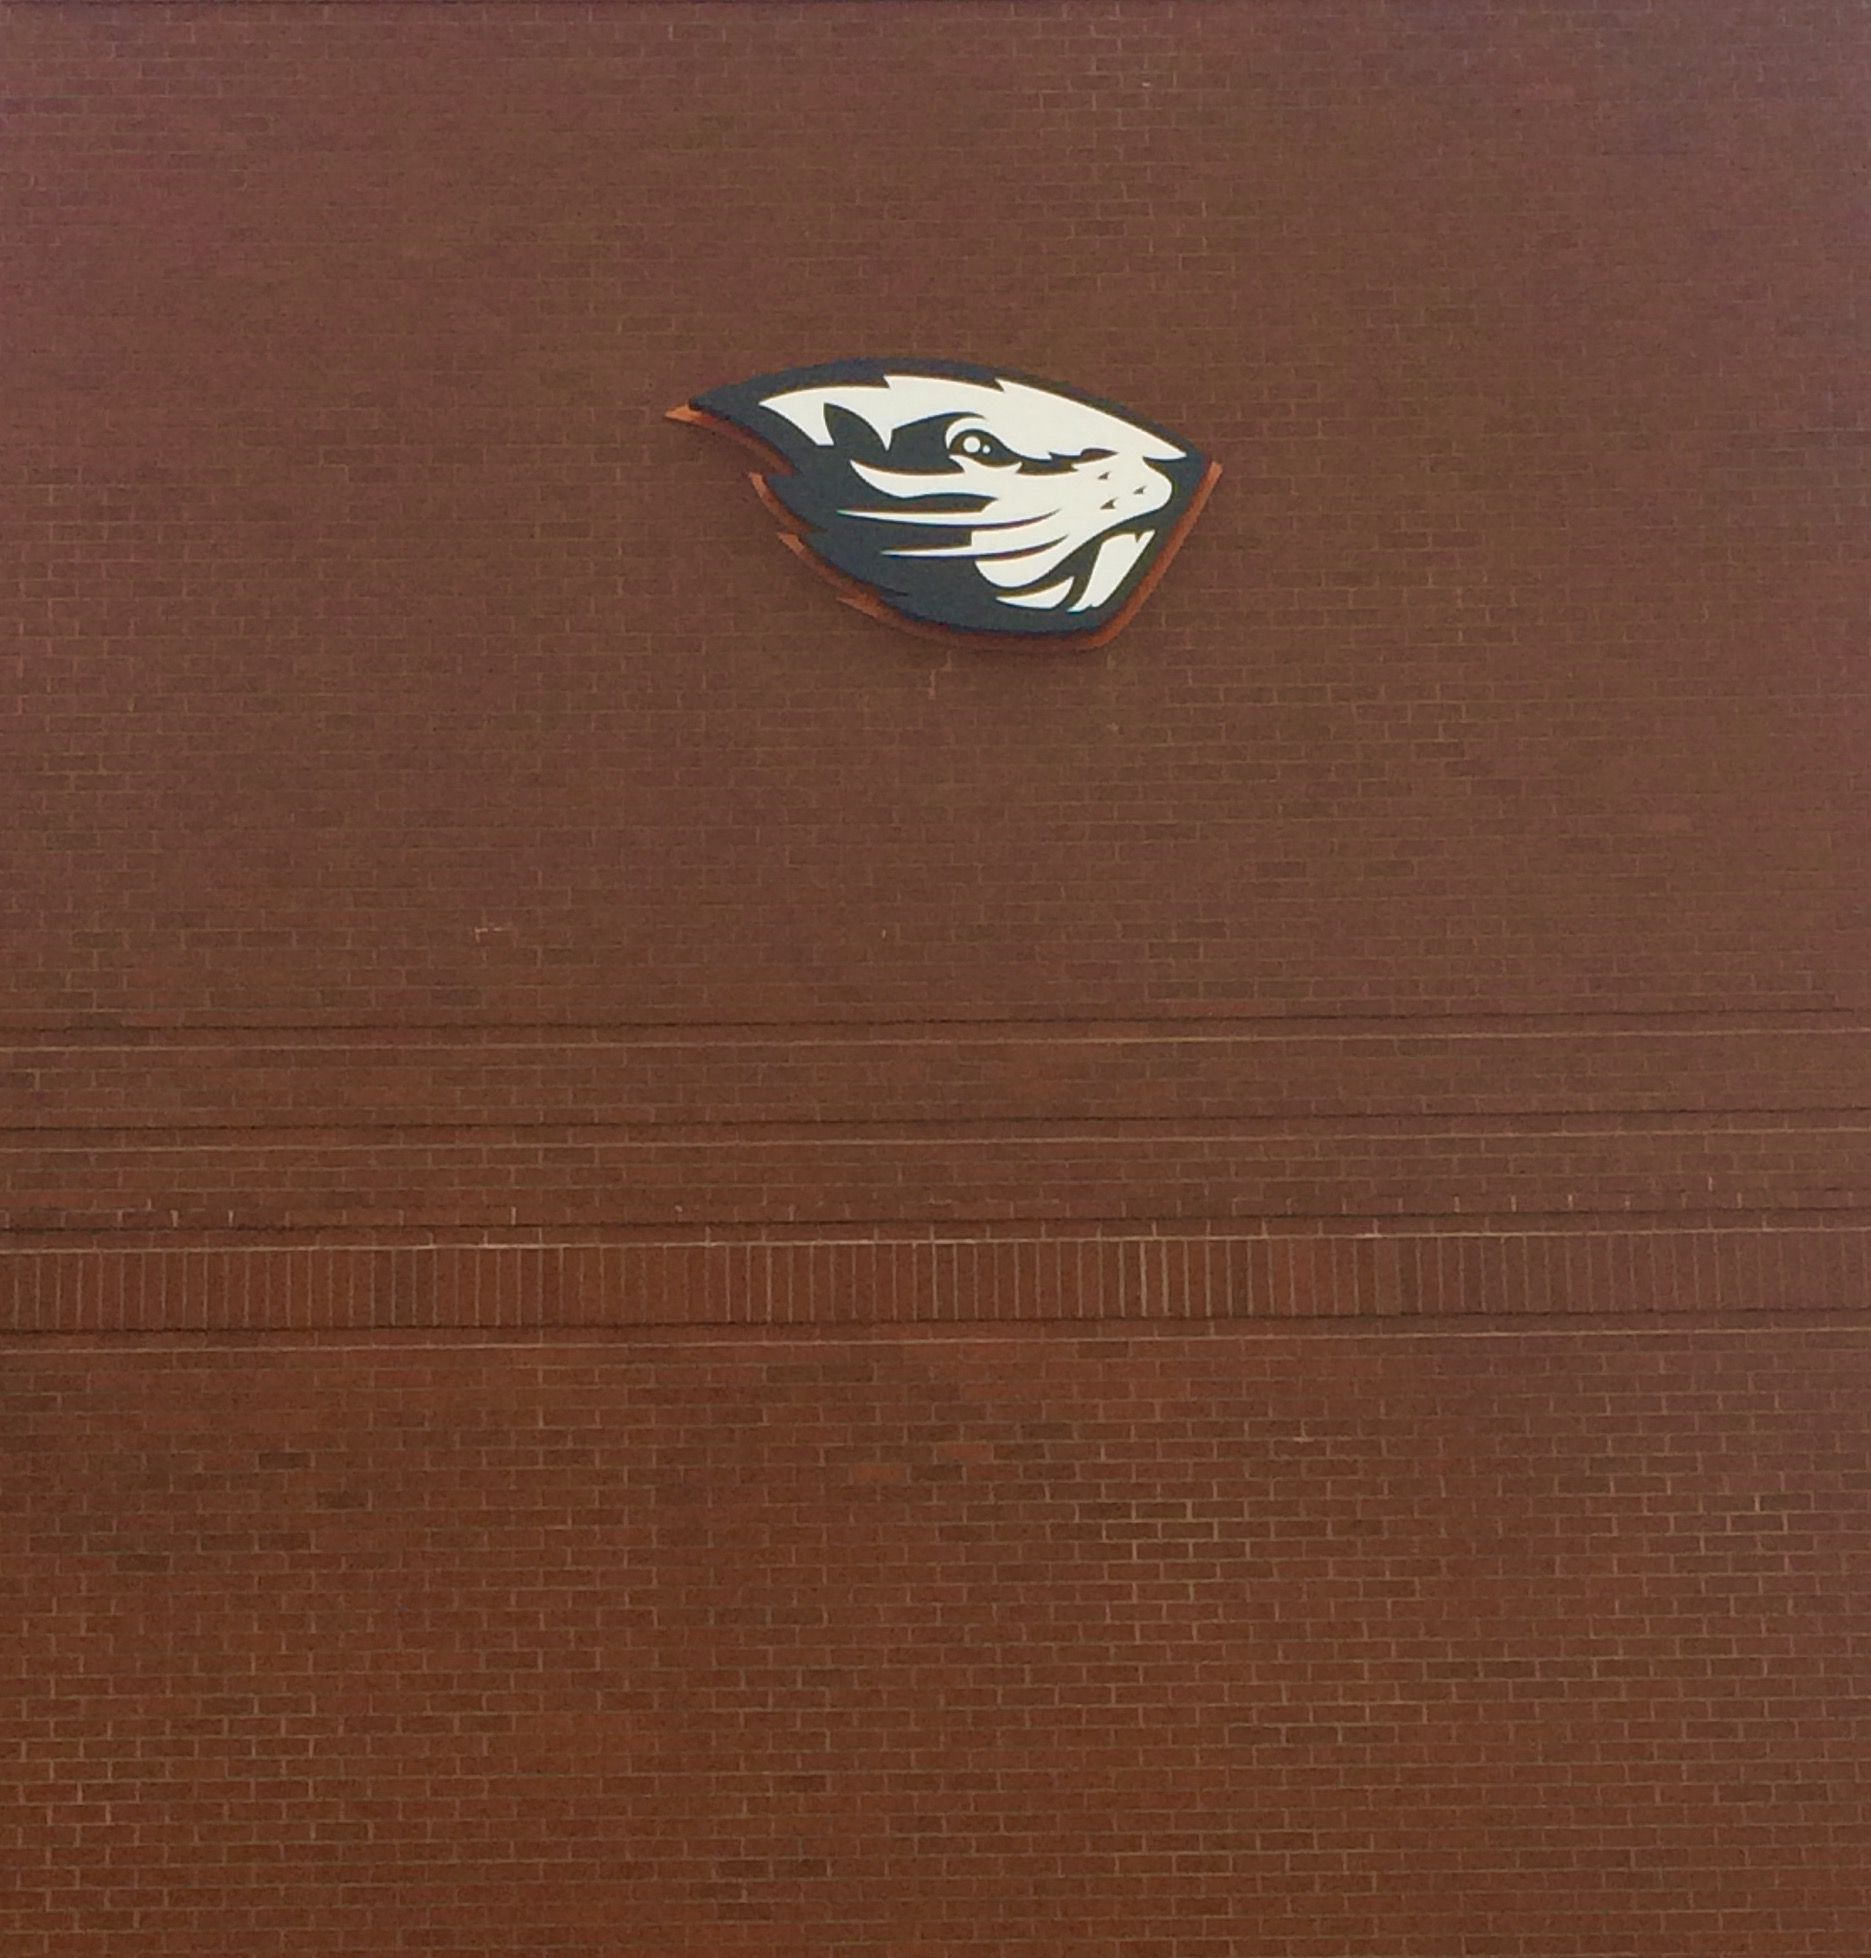 The new Beaver logo on the side of the baseball stadium is an example of a mnemonic device. The Beaver is a symbol for Oregon State University, so when we see this logo we automatically think of our school. This is true for schools everywhere, their mascot or symbol represents their school, its name, and the mascot in most cases.